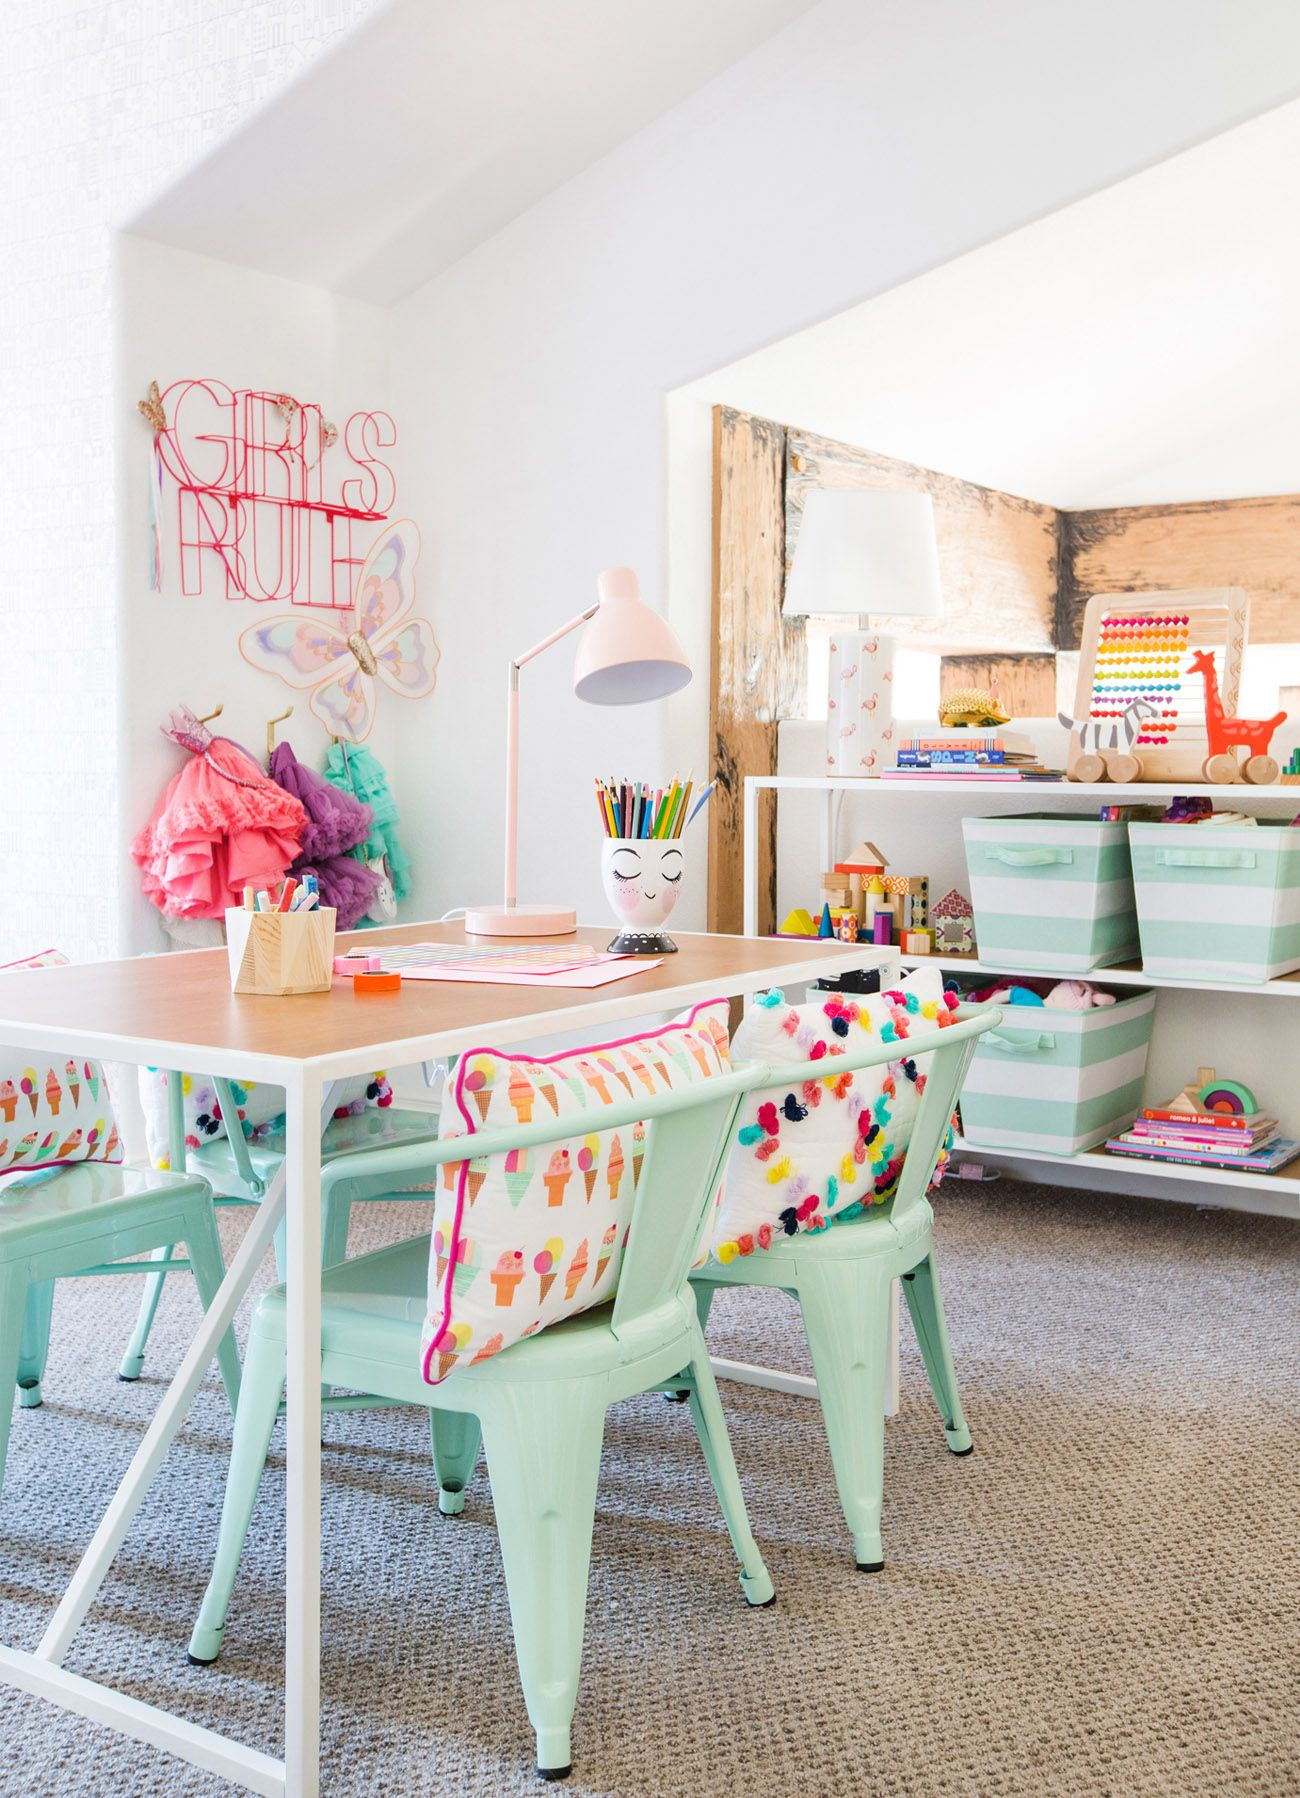 10 Amazing Kids Playroom Makeover Ideas You'll Love | Children's